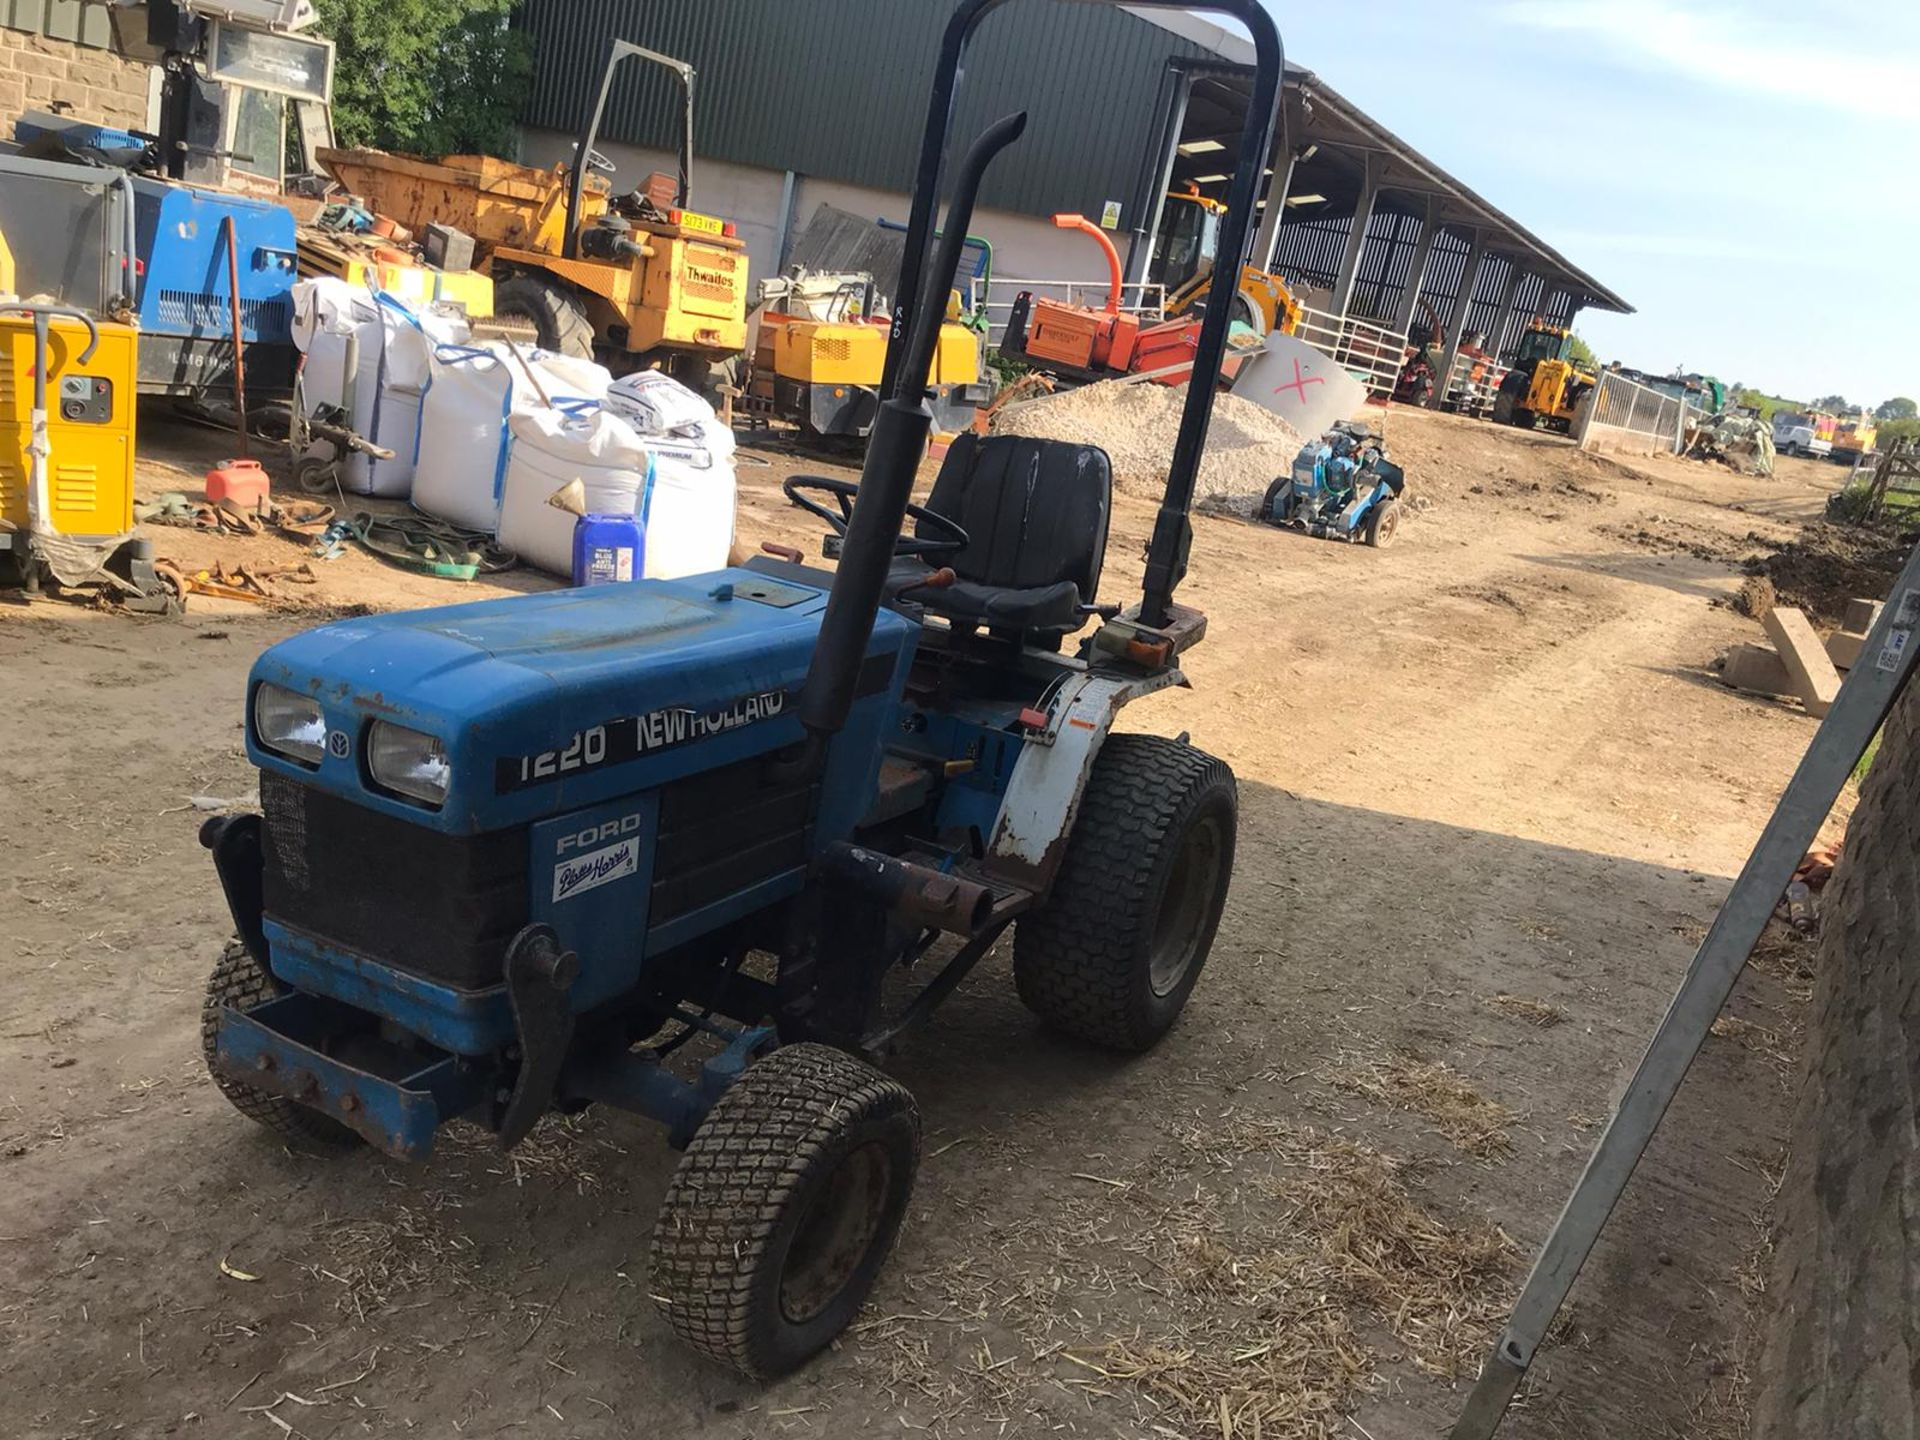 NEW HOLLAND 1220 COMPACT TRACTOR, RUNS, DRIVES, NOISY ENGINE *PLUS VAT* - Image 3 of 5